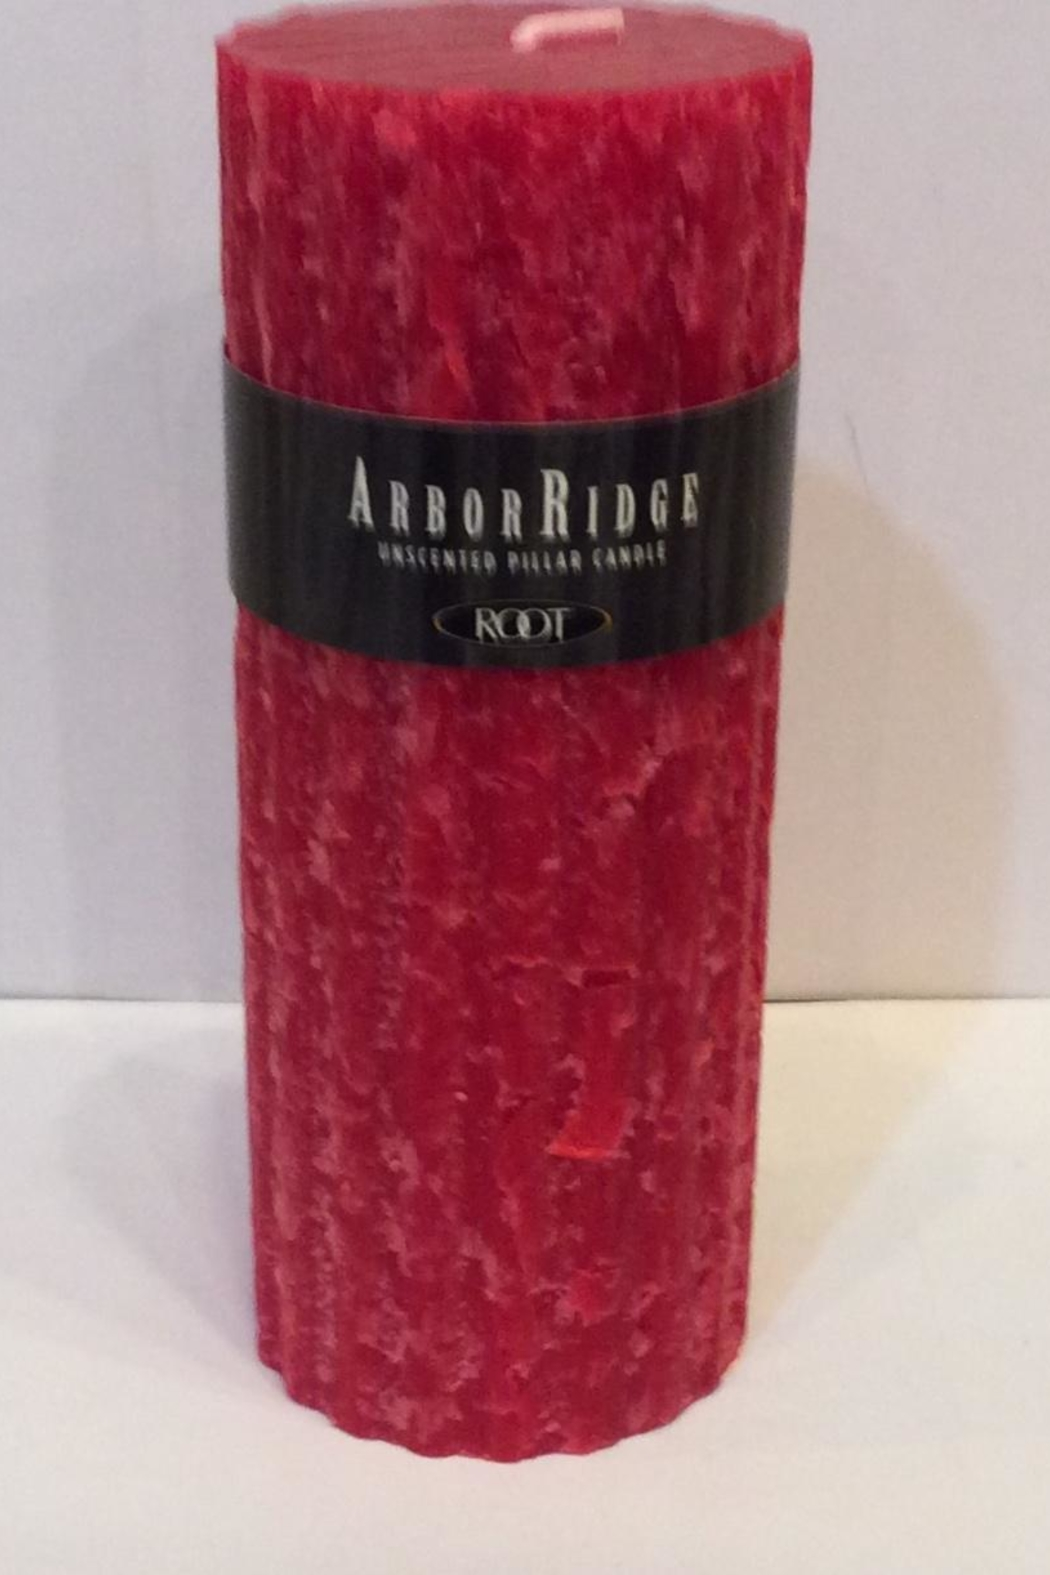 Root Candle Arborridge Unscented Pillar - Main Image